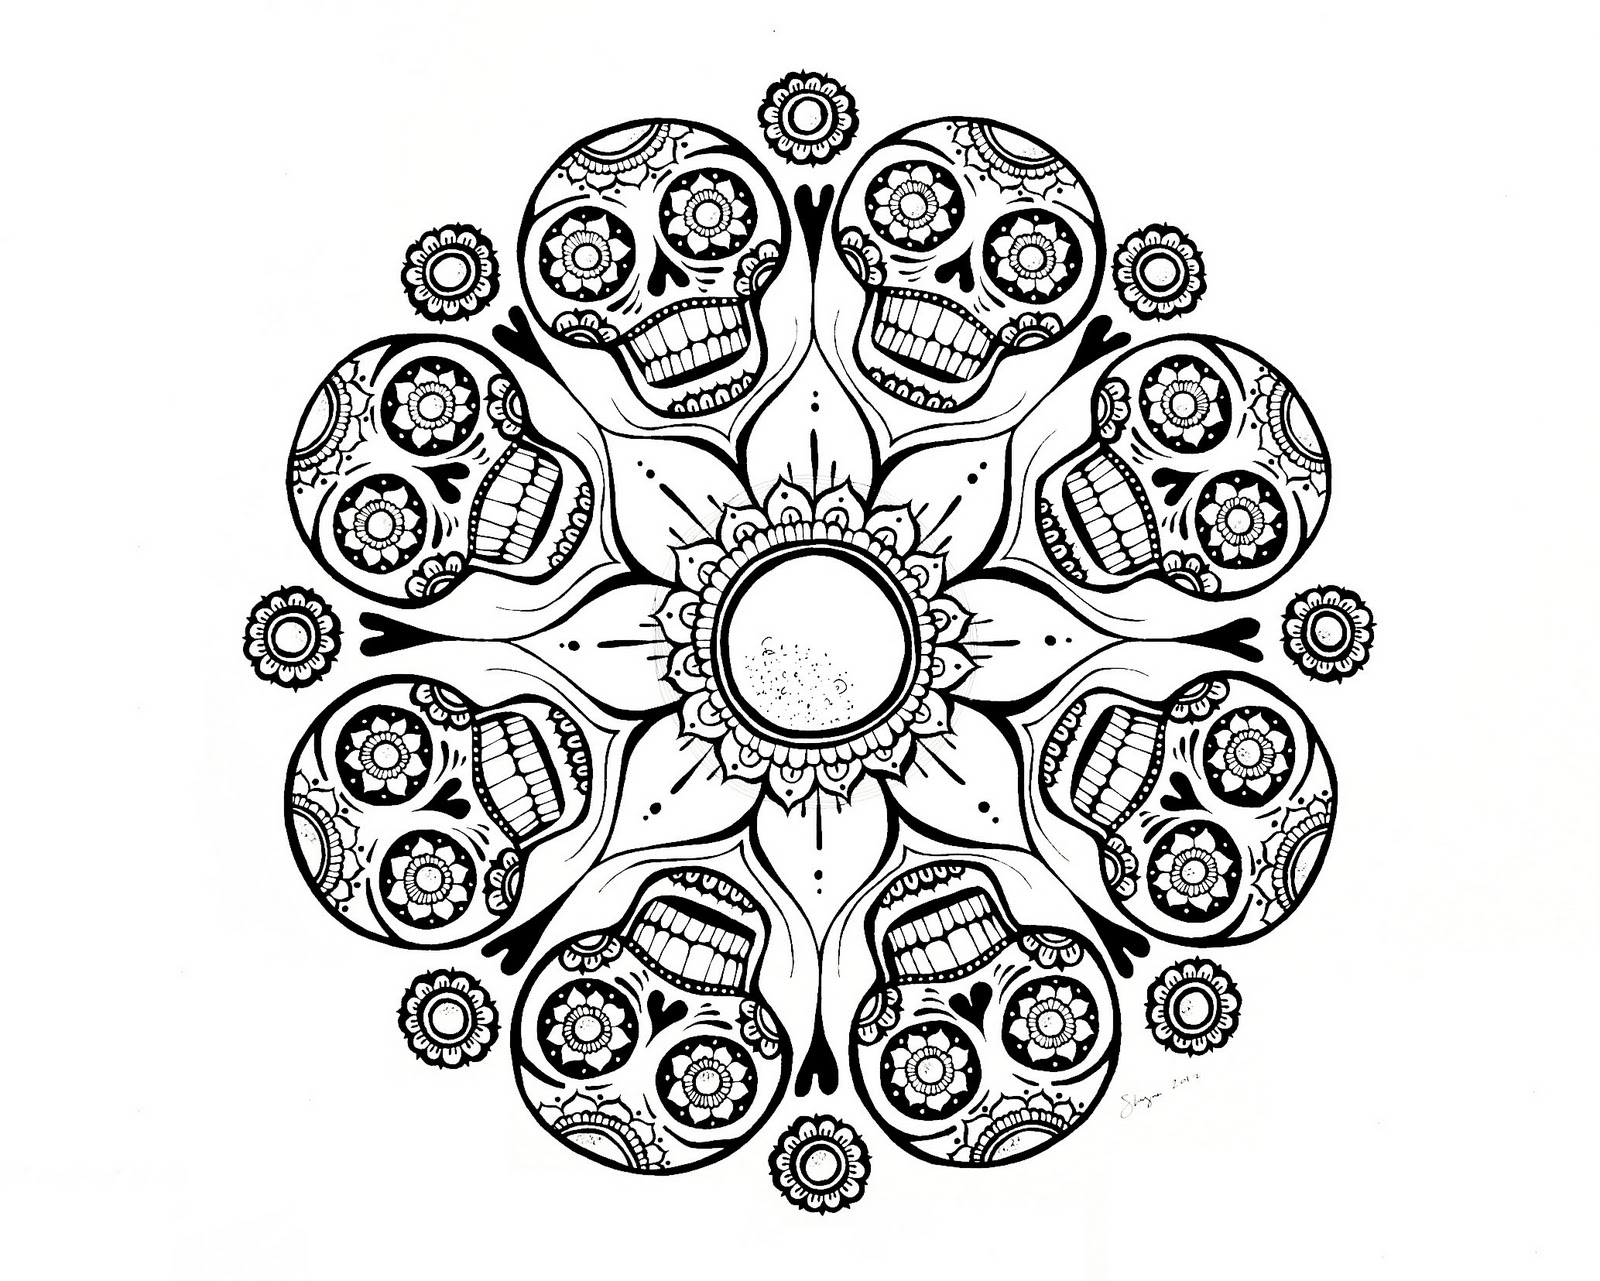 Coloring Pages : Best Coloring Free Mandala For Adults At dedans Mandala Fée